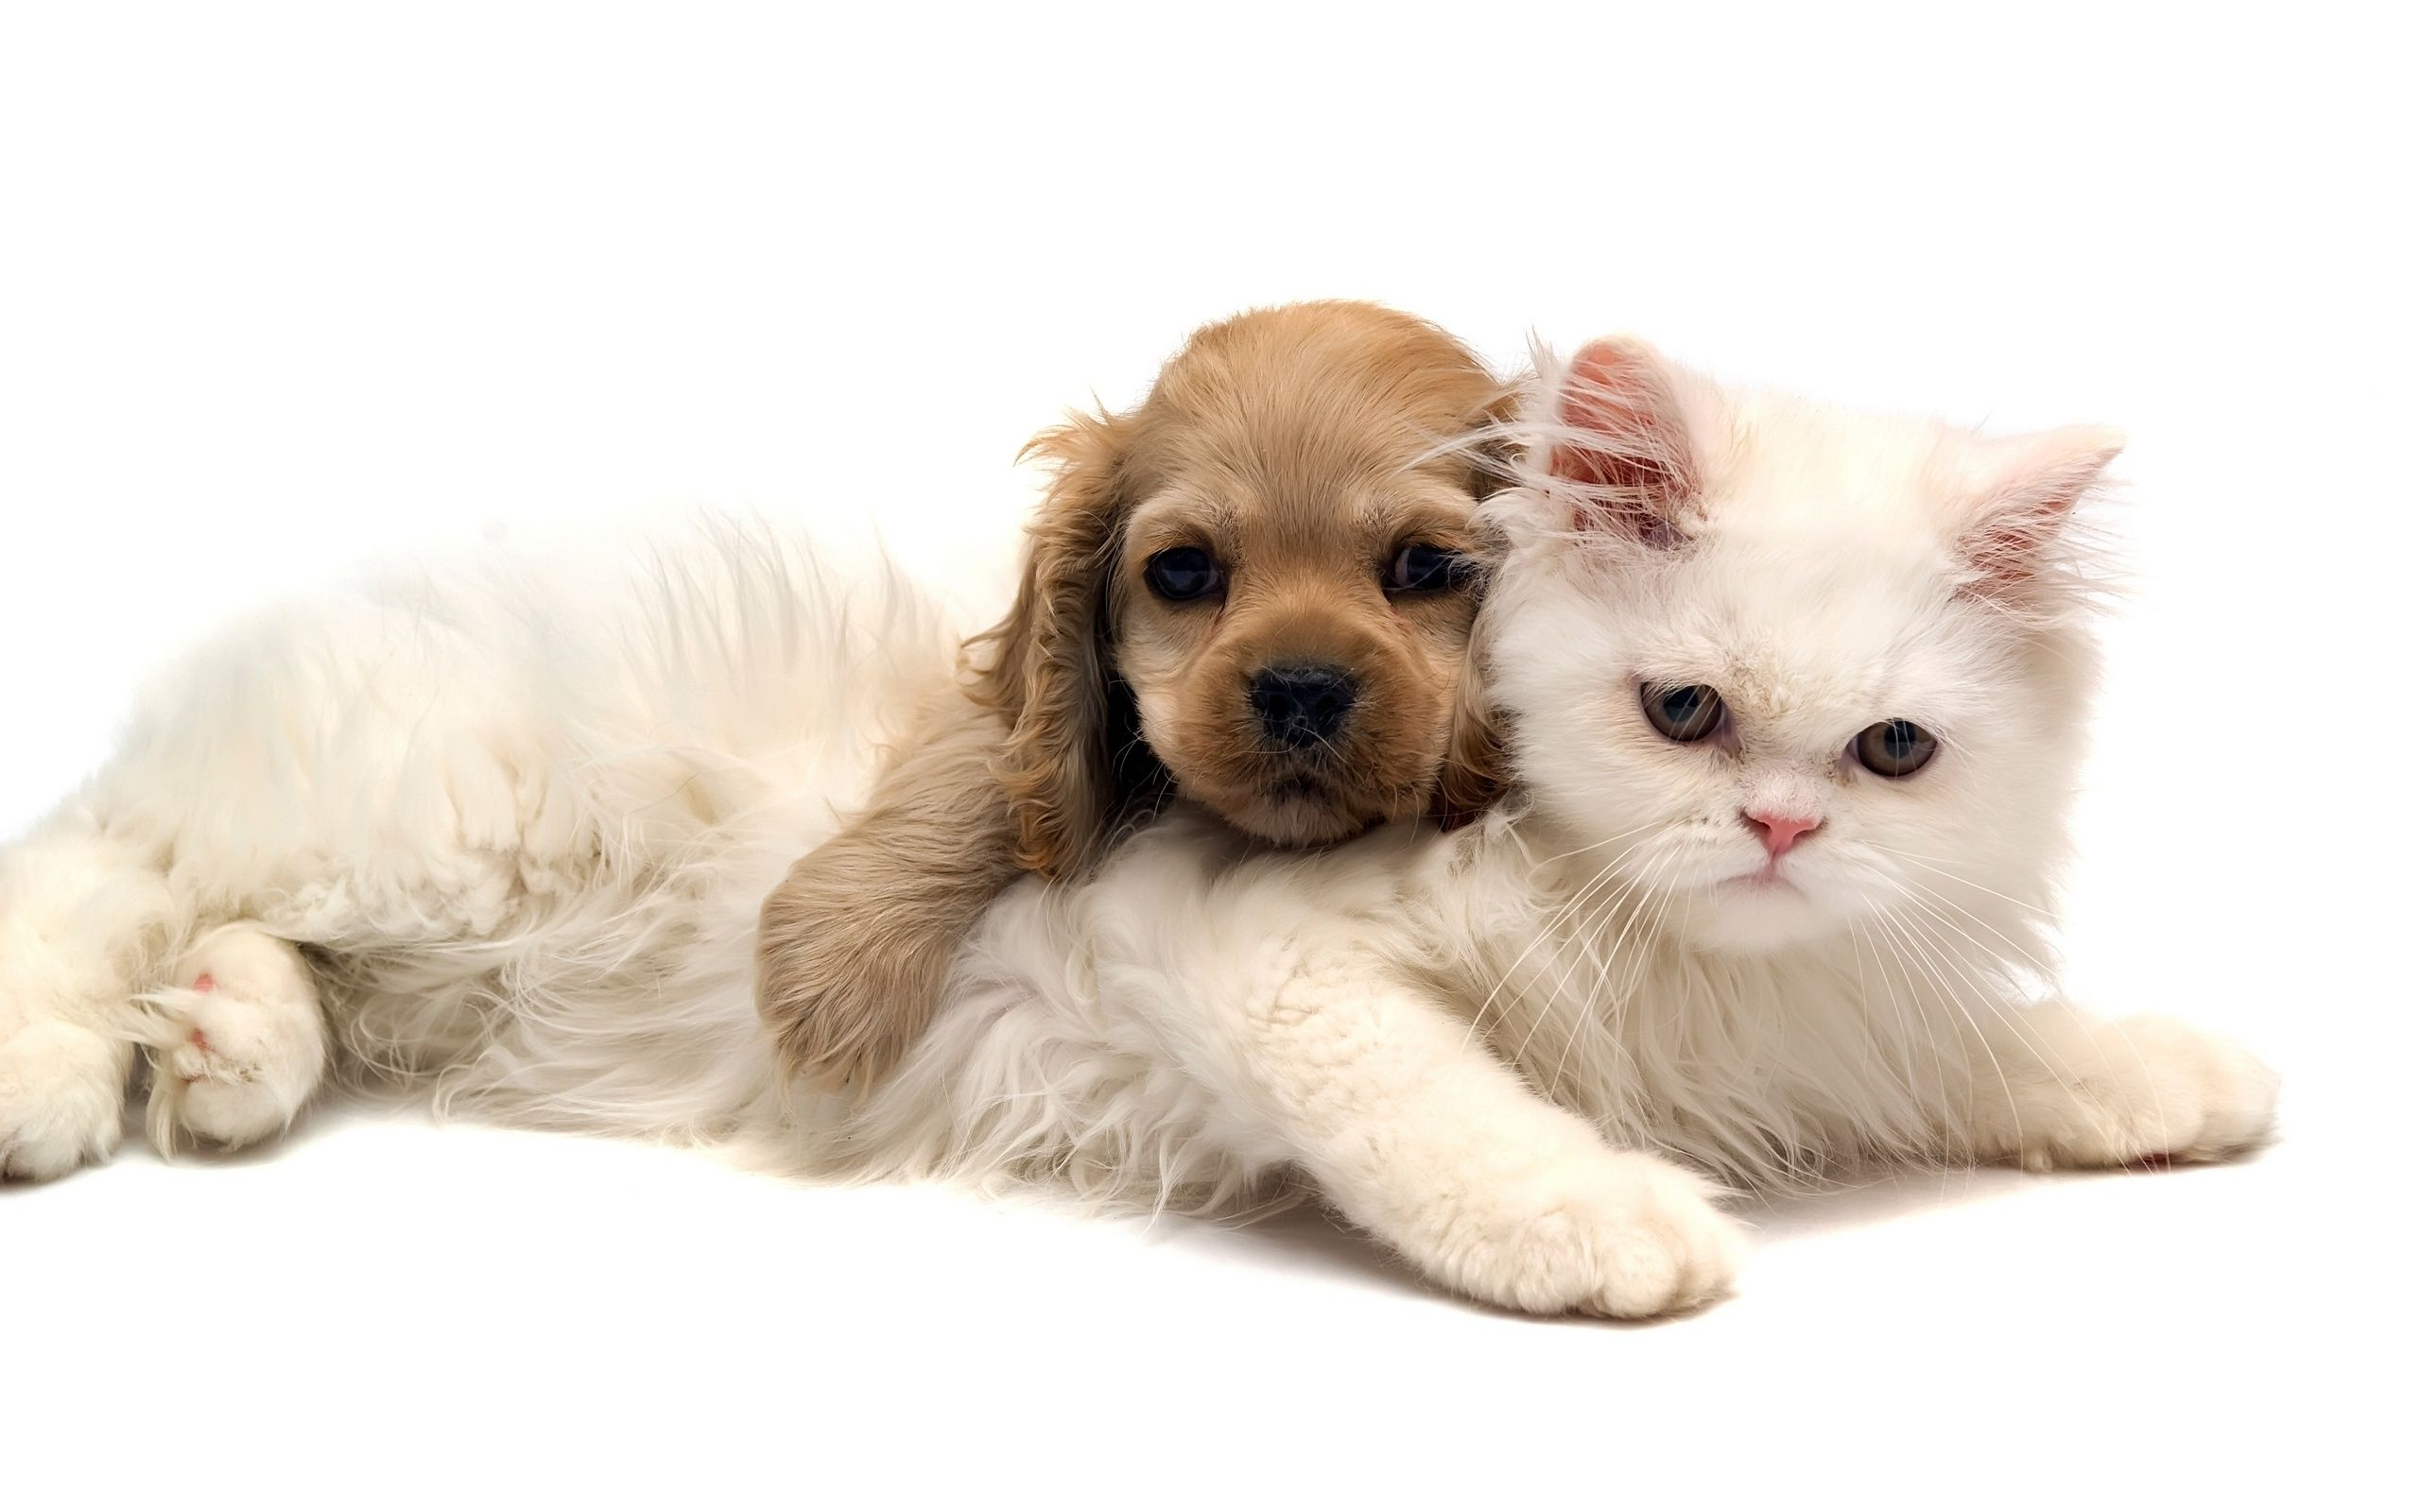 Pin By Hamza Coskun On Dogs Cute Cats And Dogs Kittens And Puppies Cute Puppies